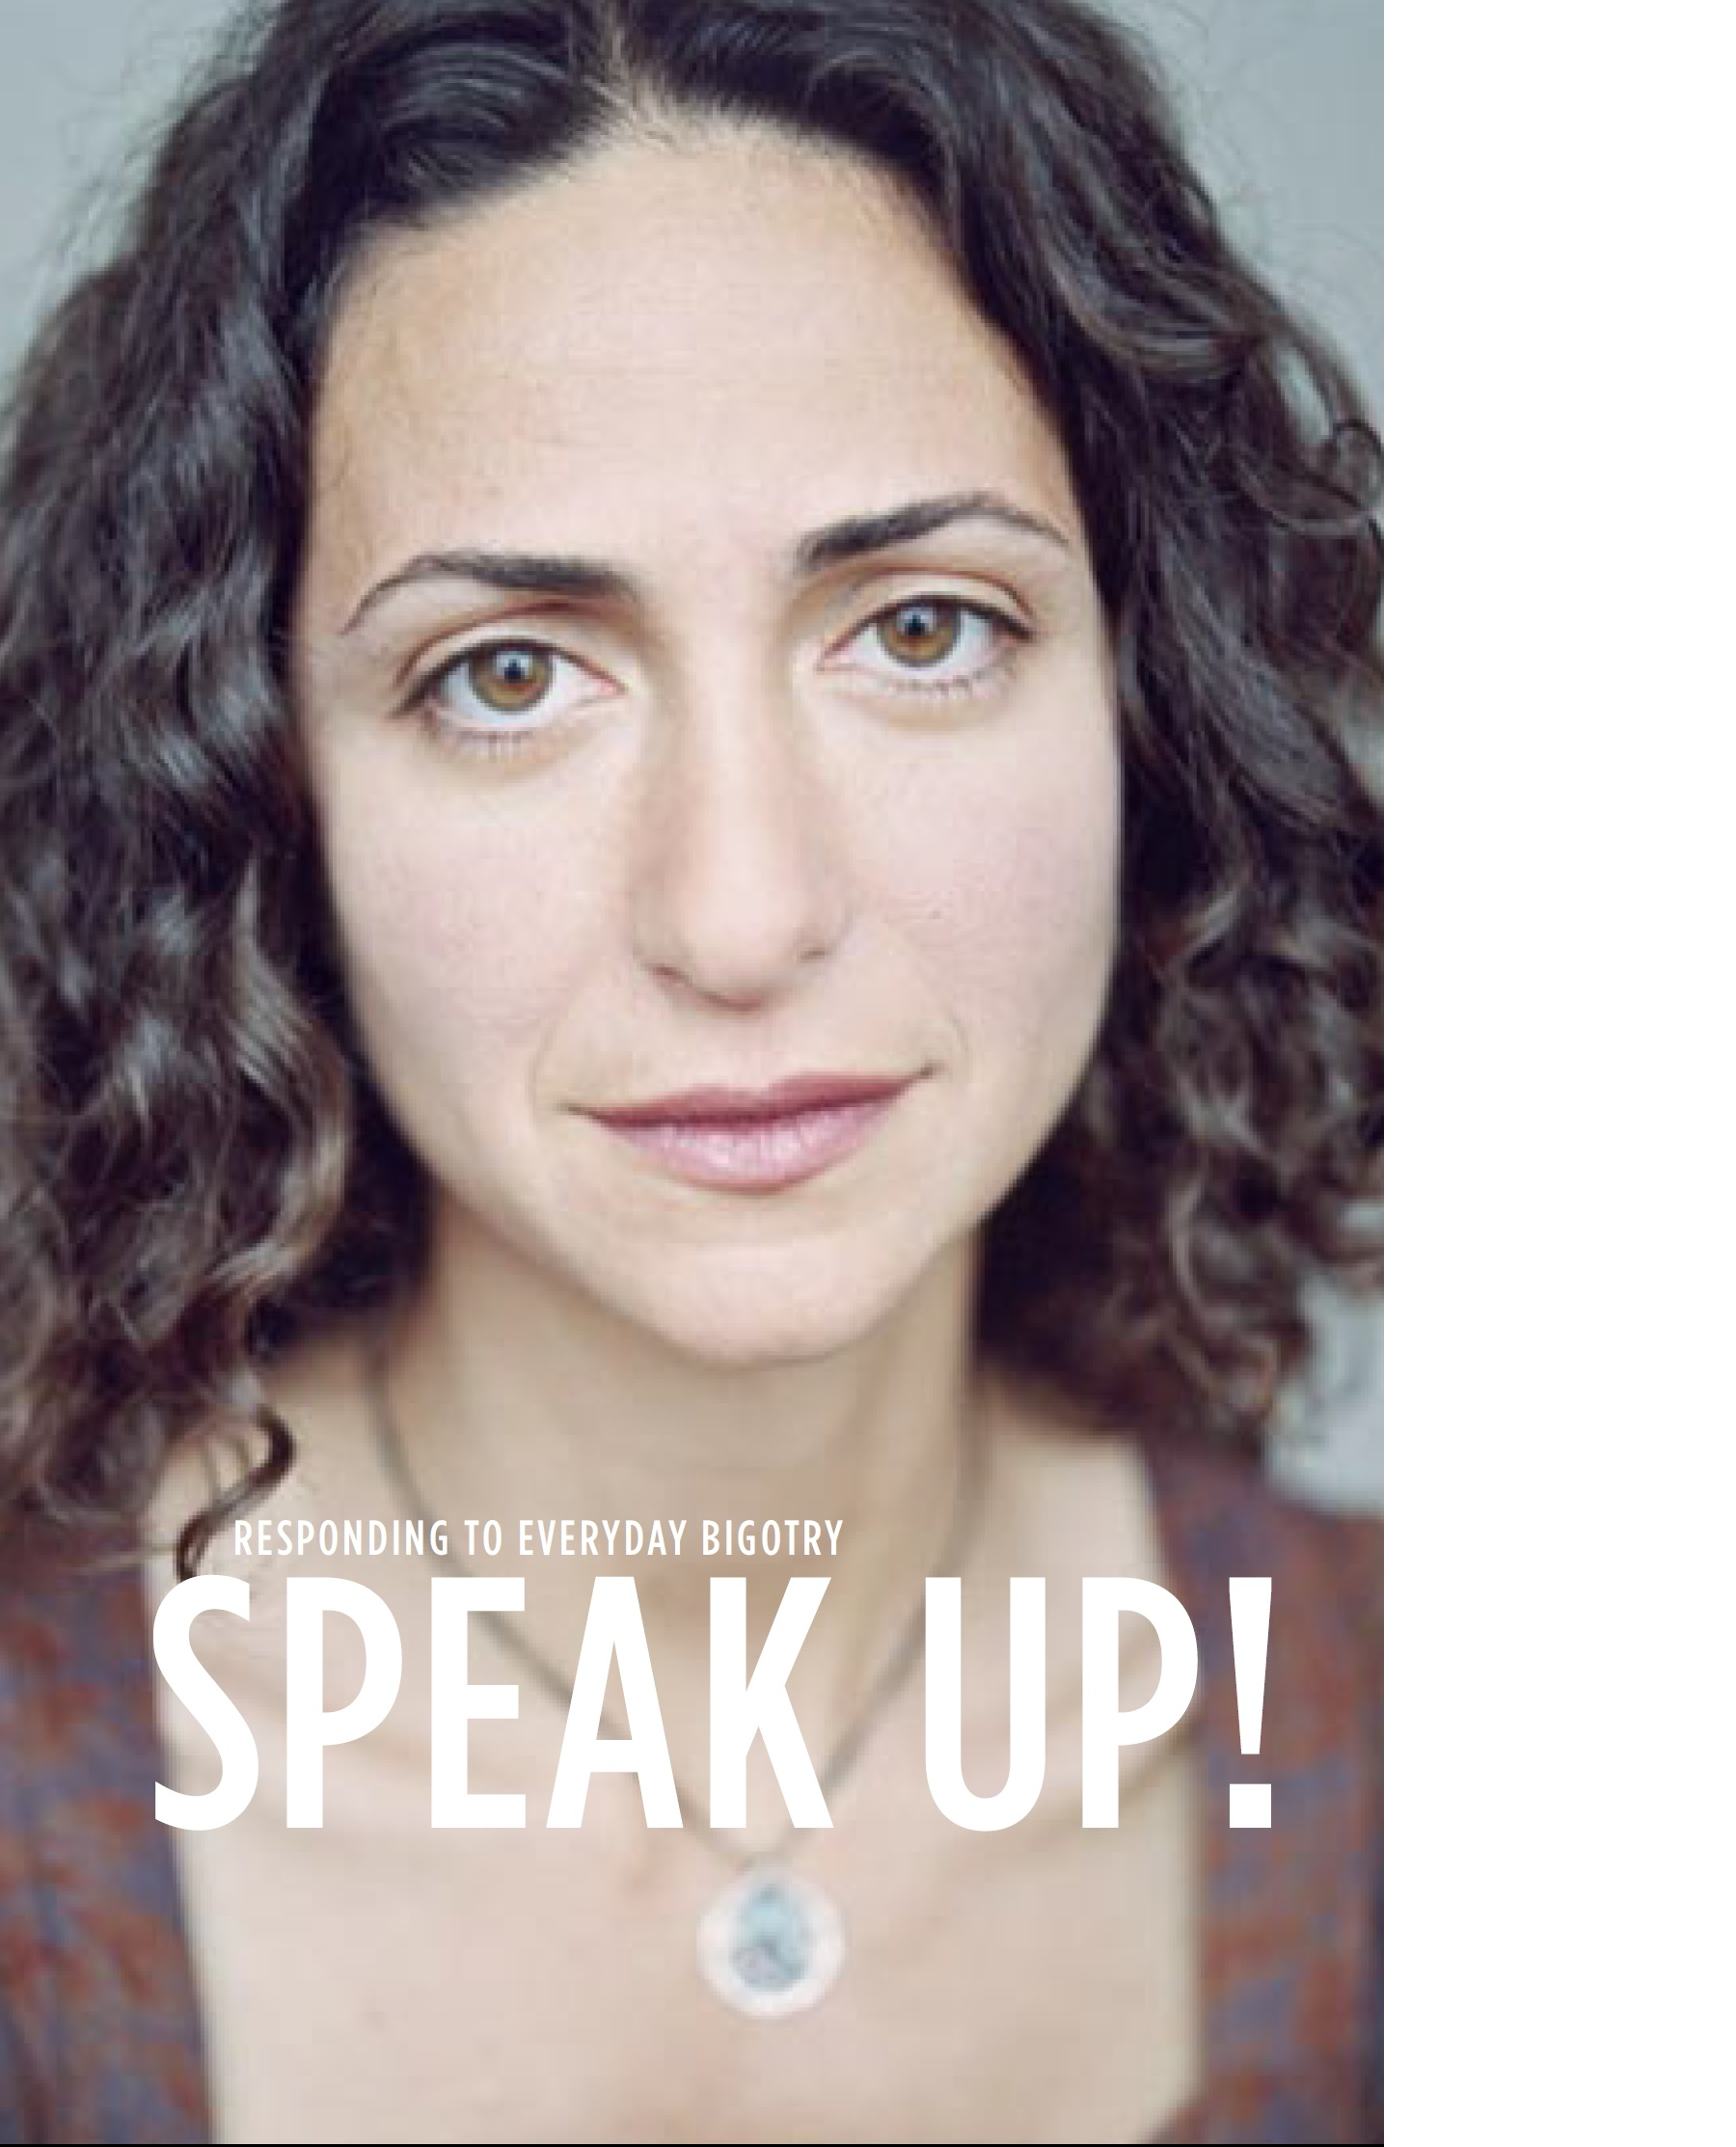 Speak Up: Responding to Everyday Bigotry